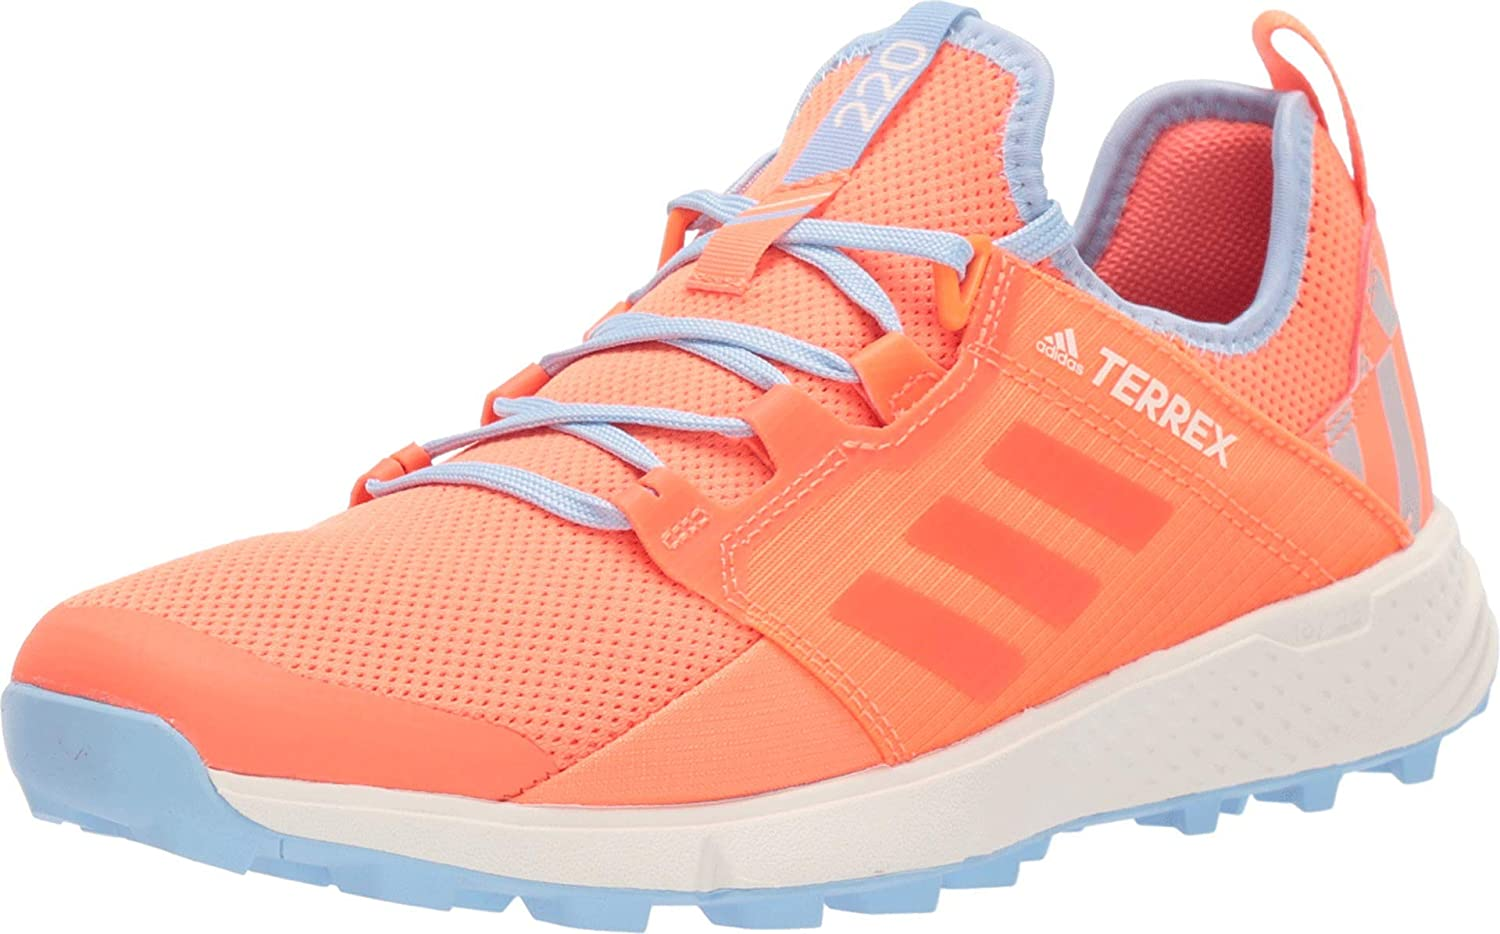 adidas outdoor Womens Terrex Speed Ld Trail Running Sneakers Shoes - Orange - Size 8.5 B